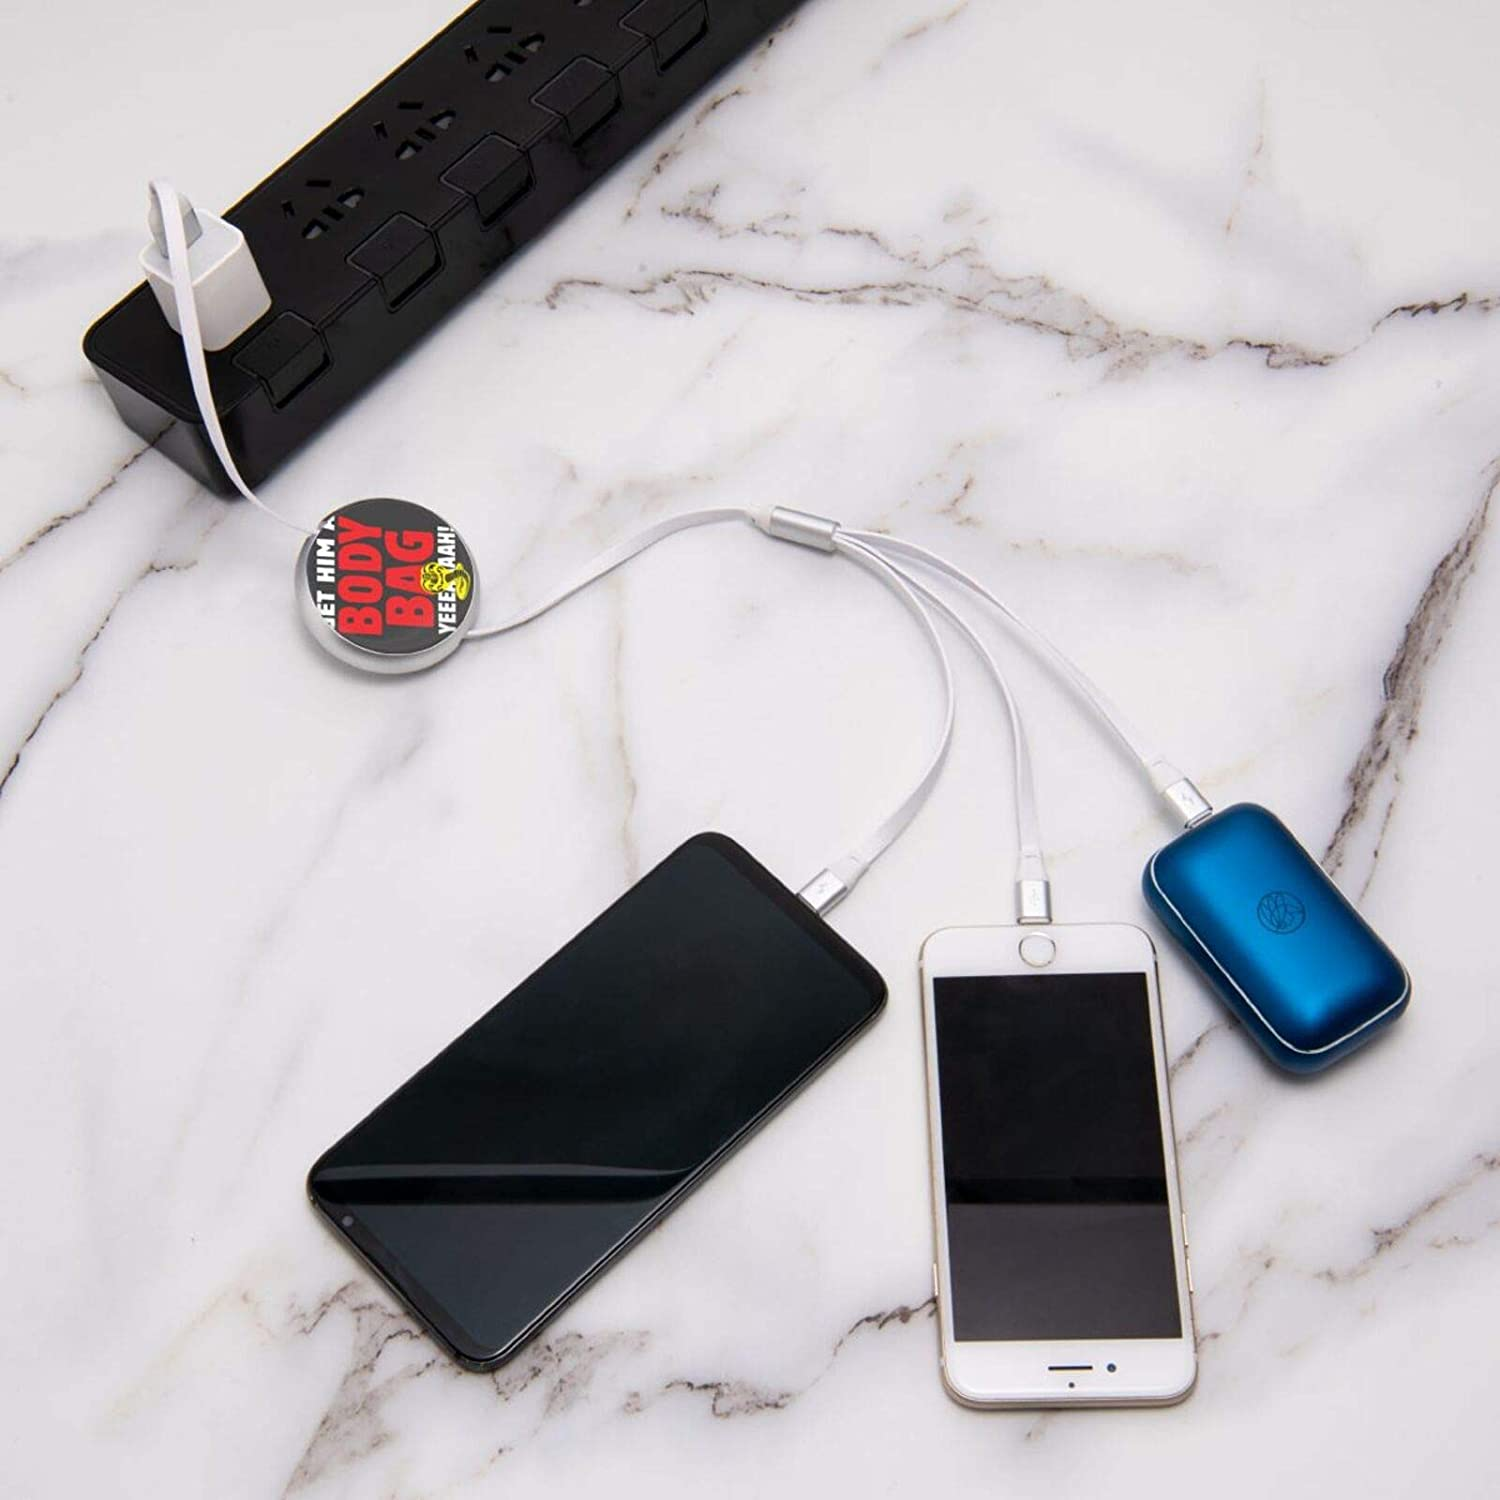 Multi Charging Cable Portable 3 in 1 Get Him A Body Bag USB Cable USB Power Cords for Cell Phone Tablets and More Devices Charging